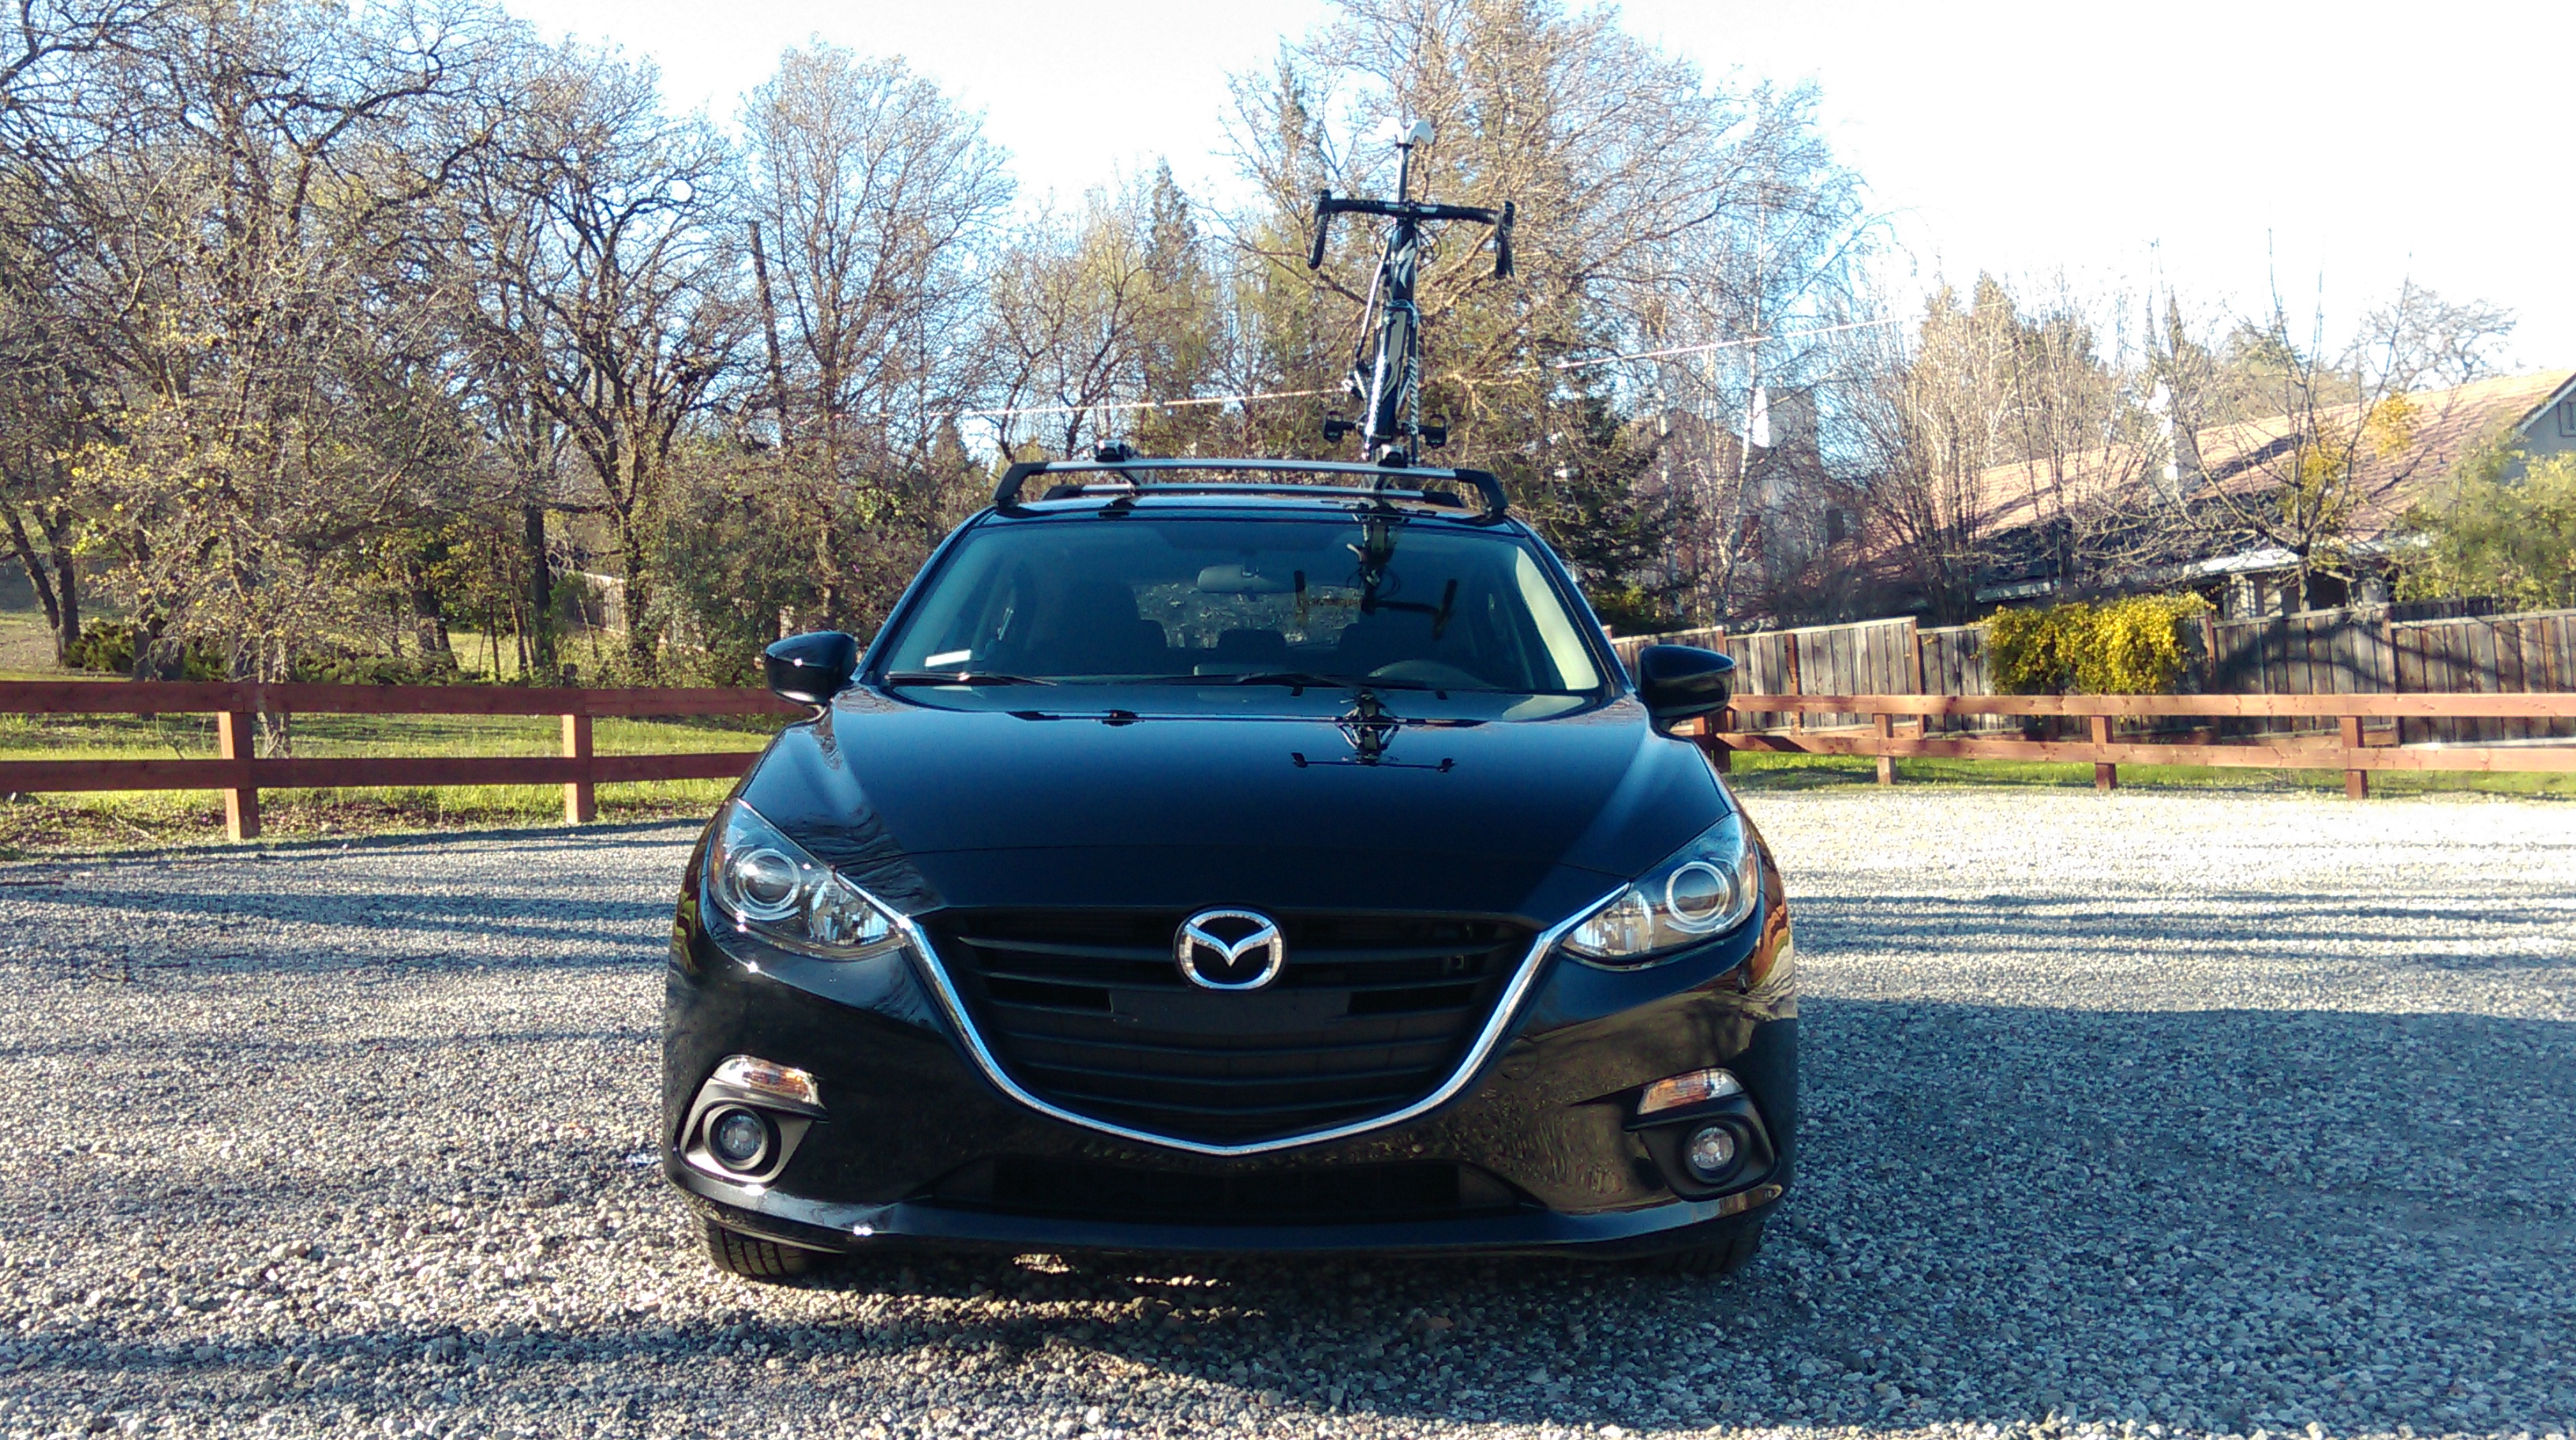 is mazda itm image door removable roof s rack loading